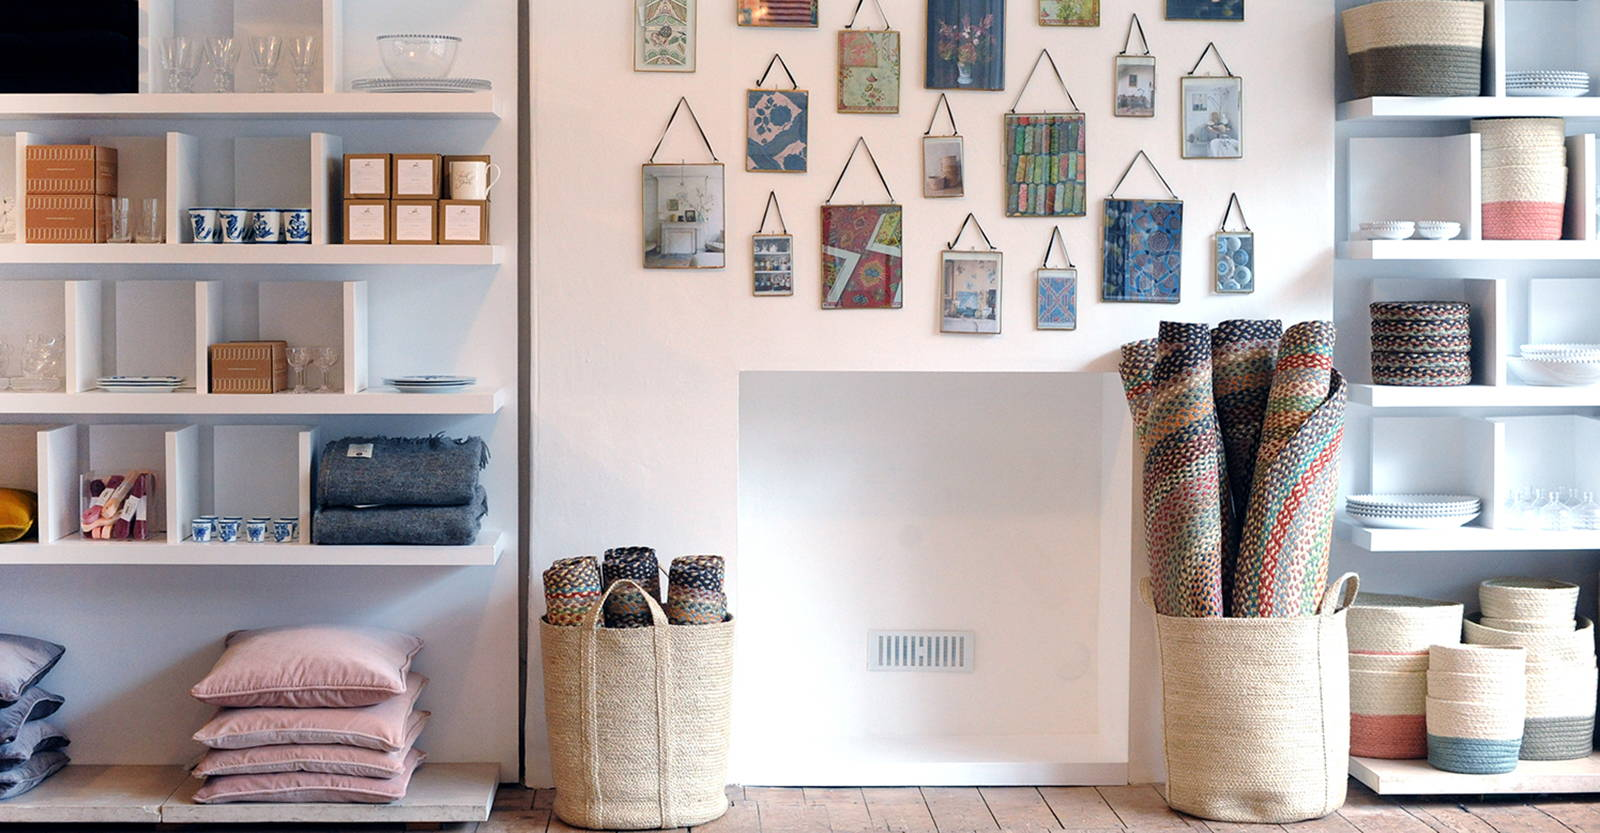 Braided Rugs, Frames and Baskets